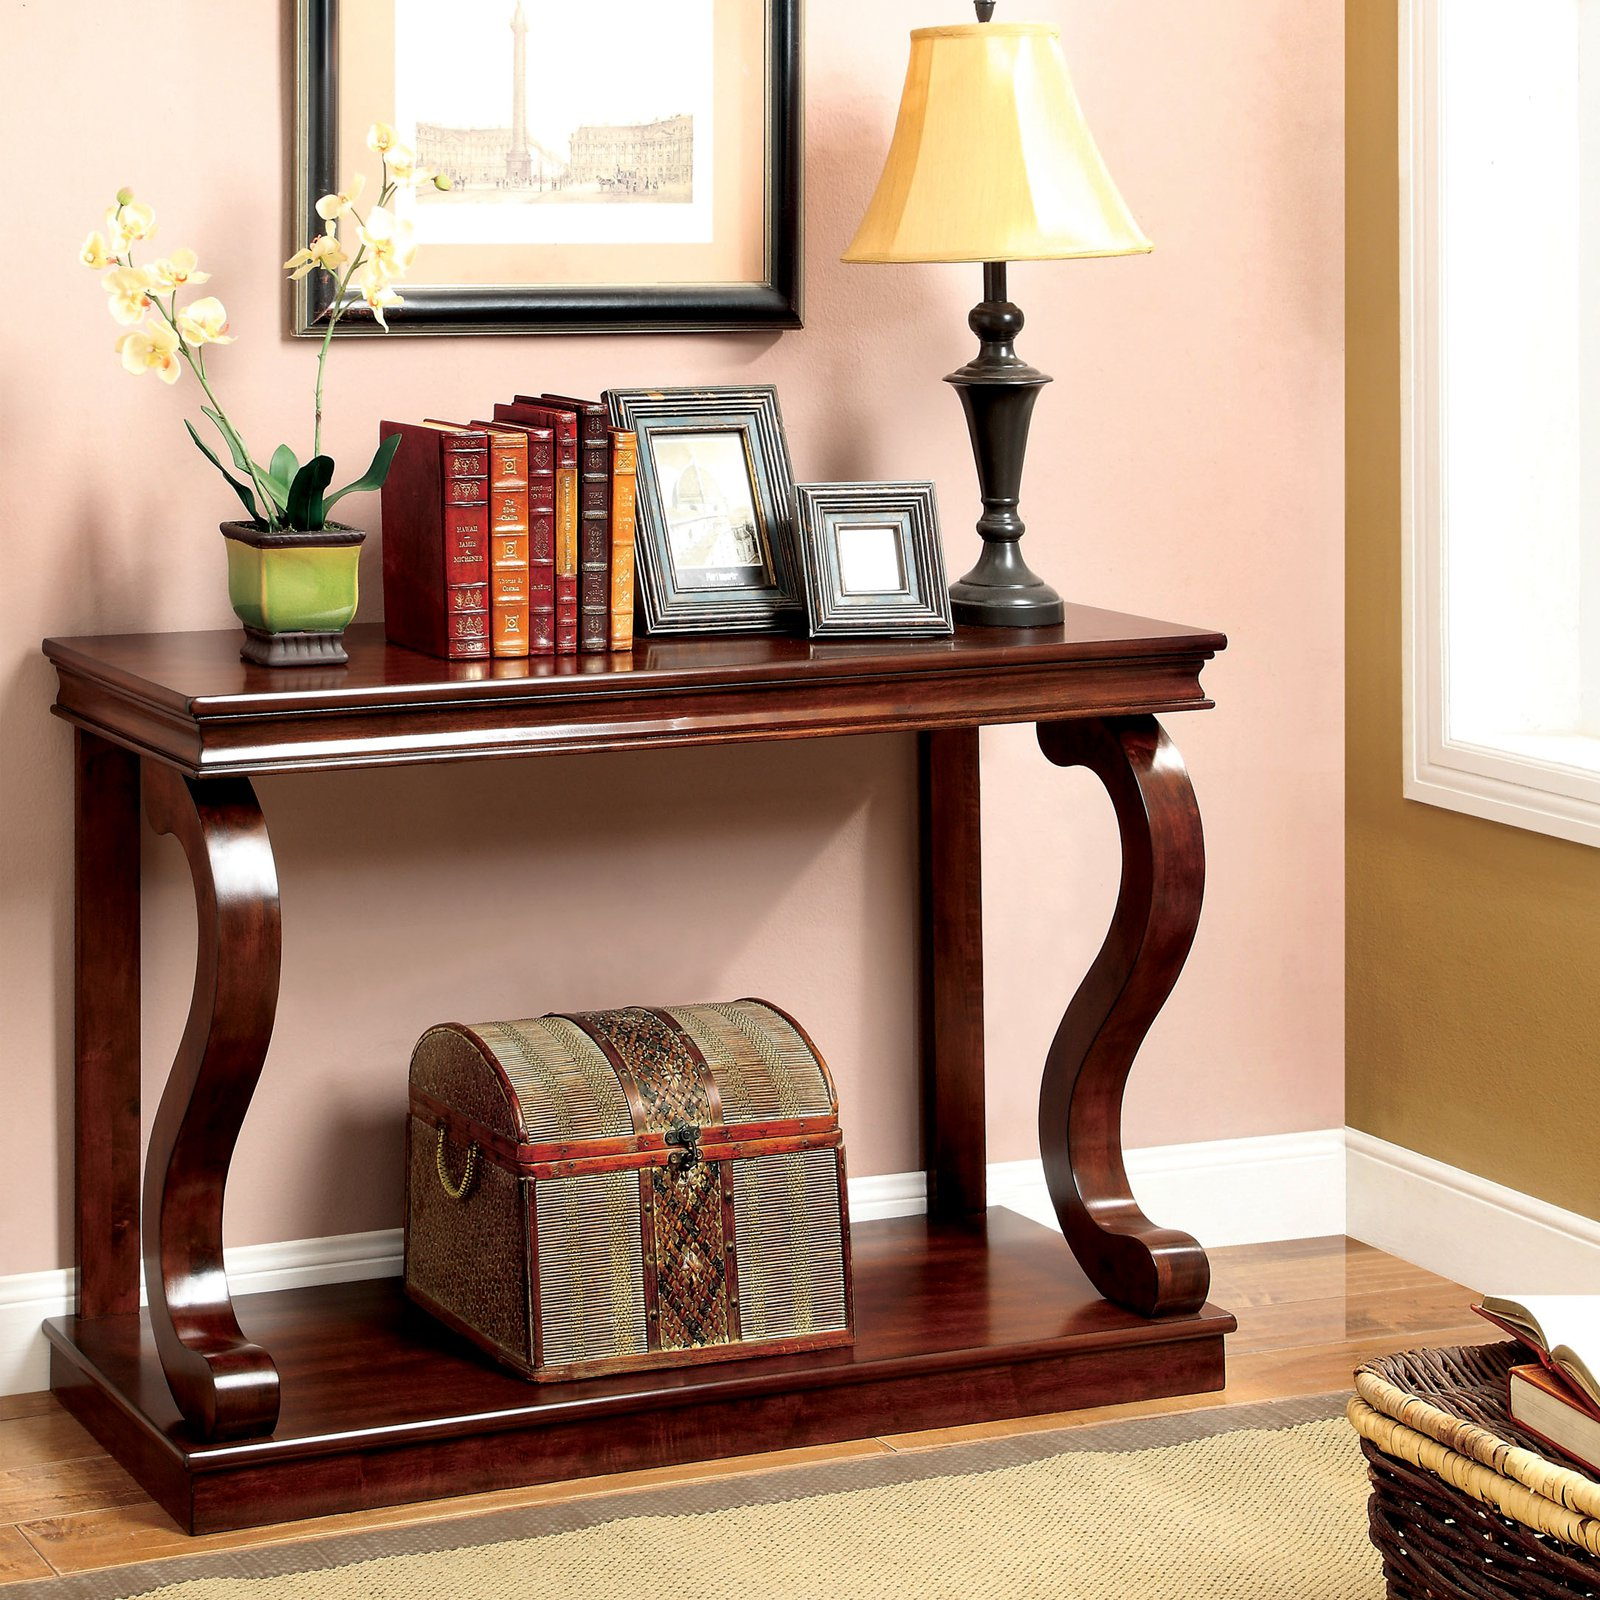 Furniture of America Edinburg S-Shaped Base Console Table - Cherry